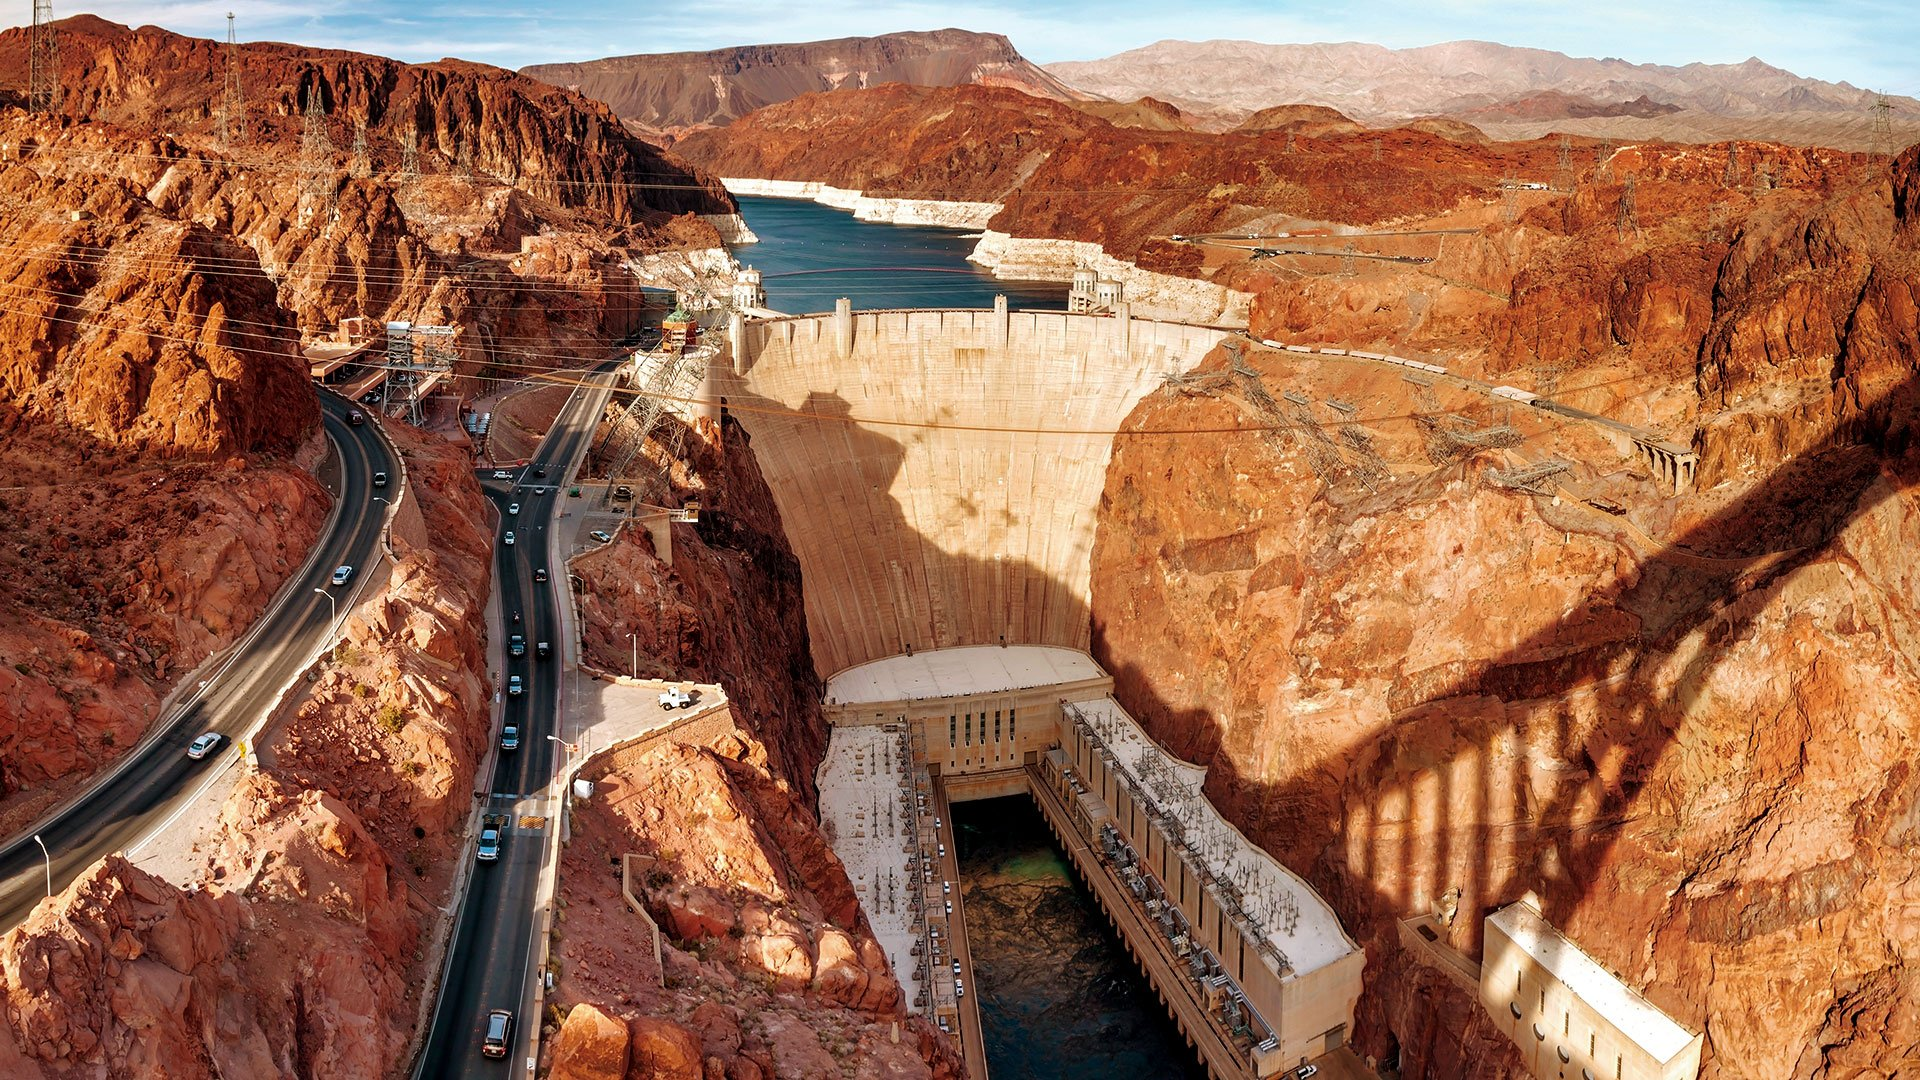 The Hoover Dam seen from the O'Callaghan-Tillman Memorial Bridge.